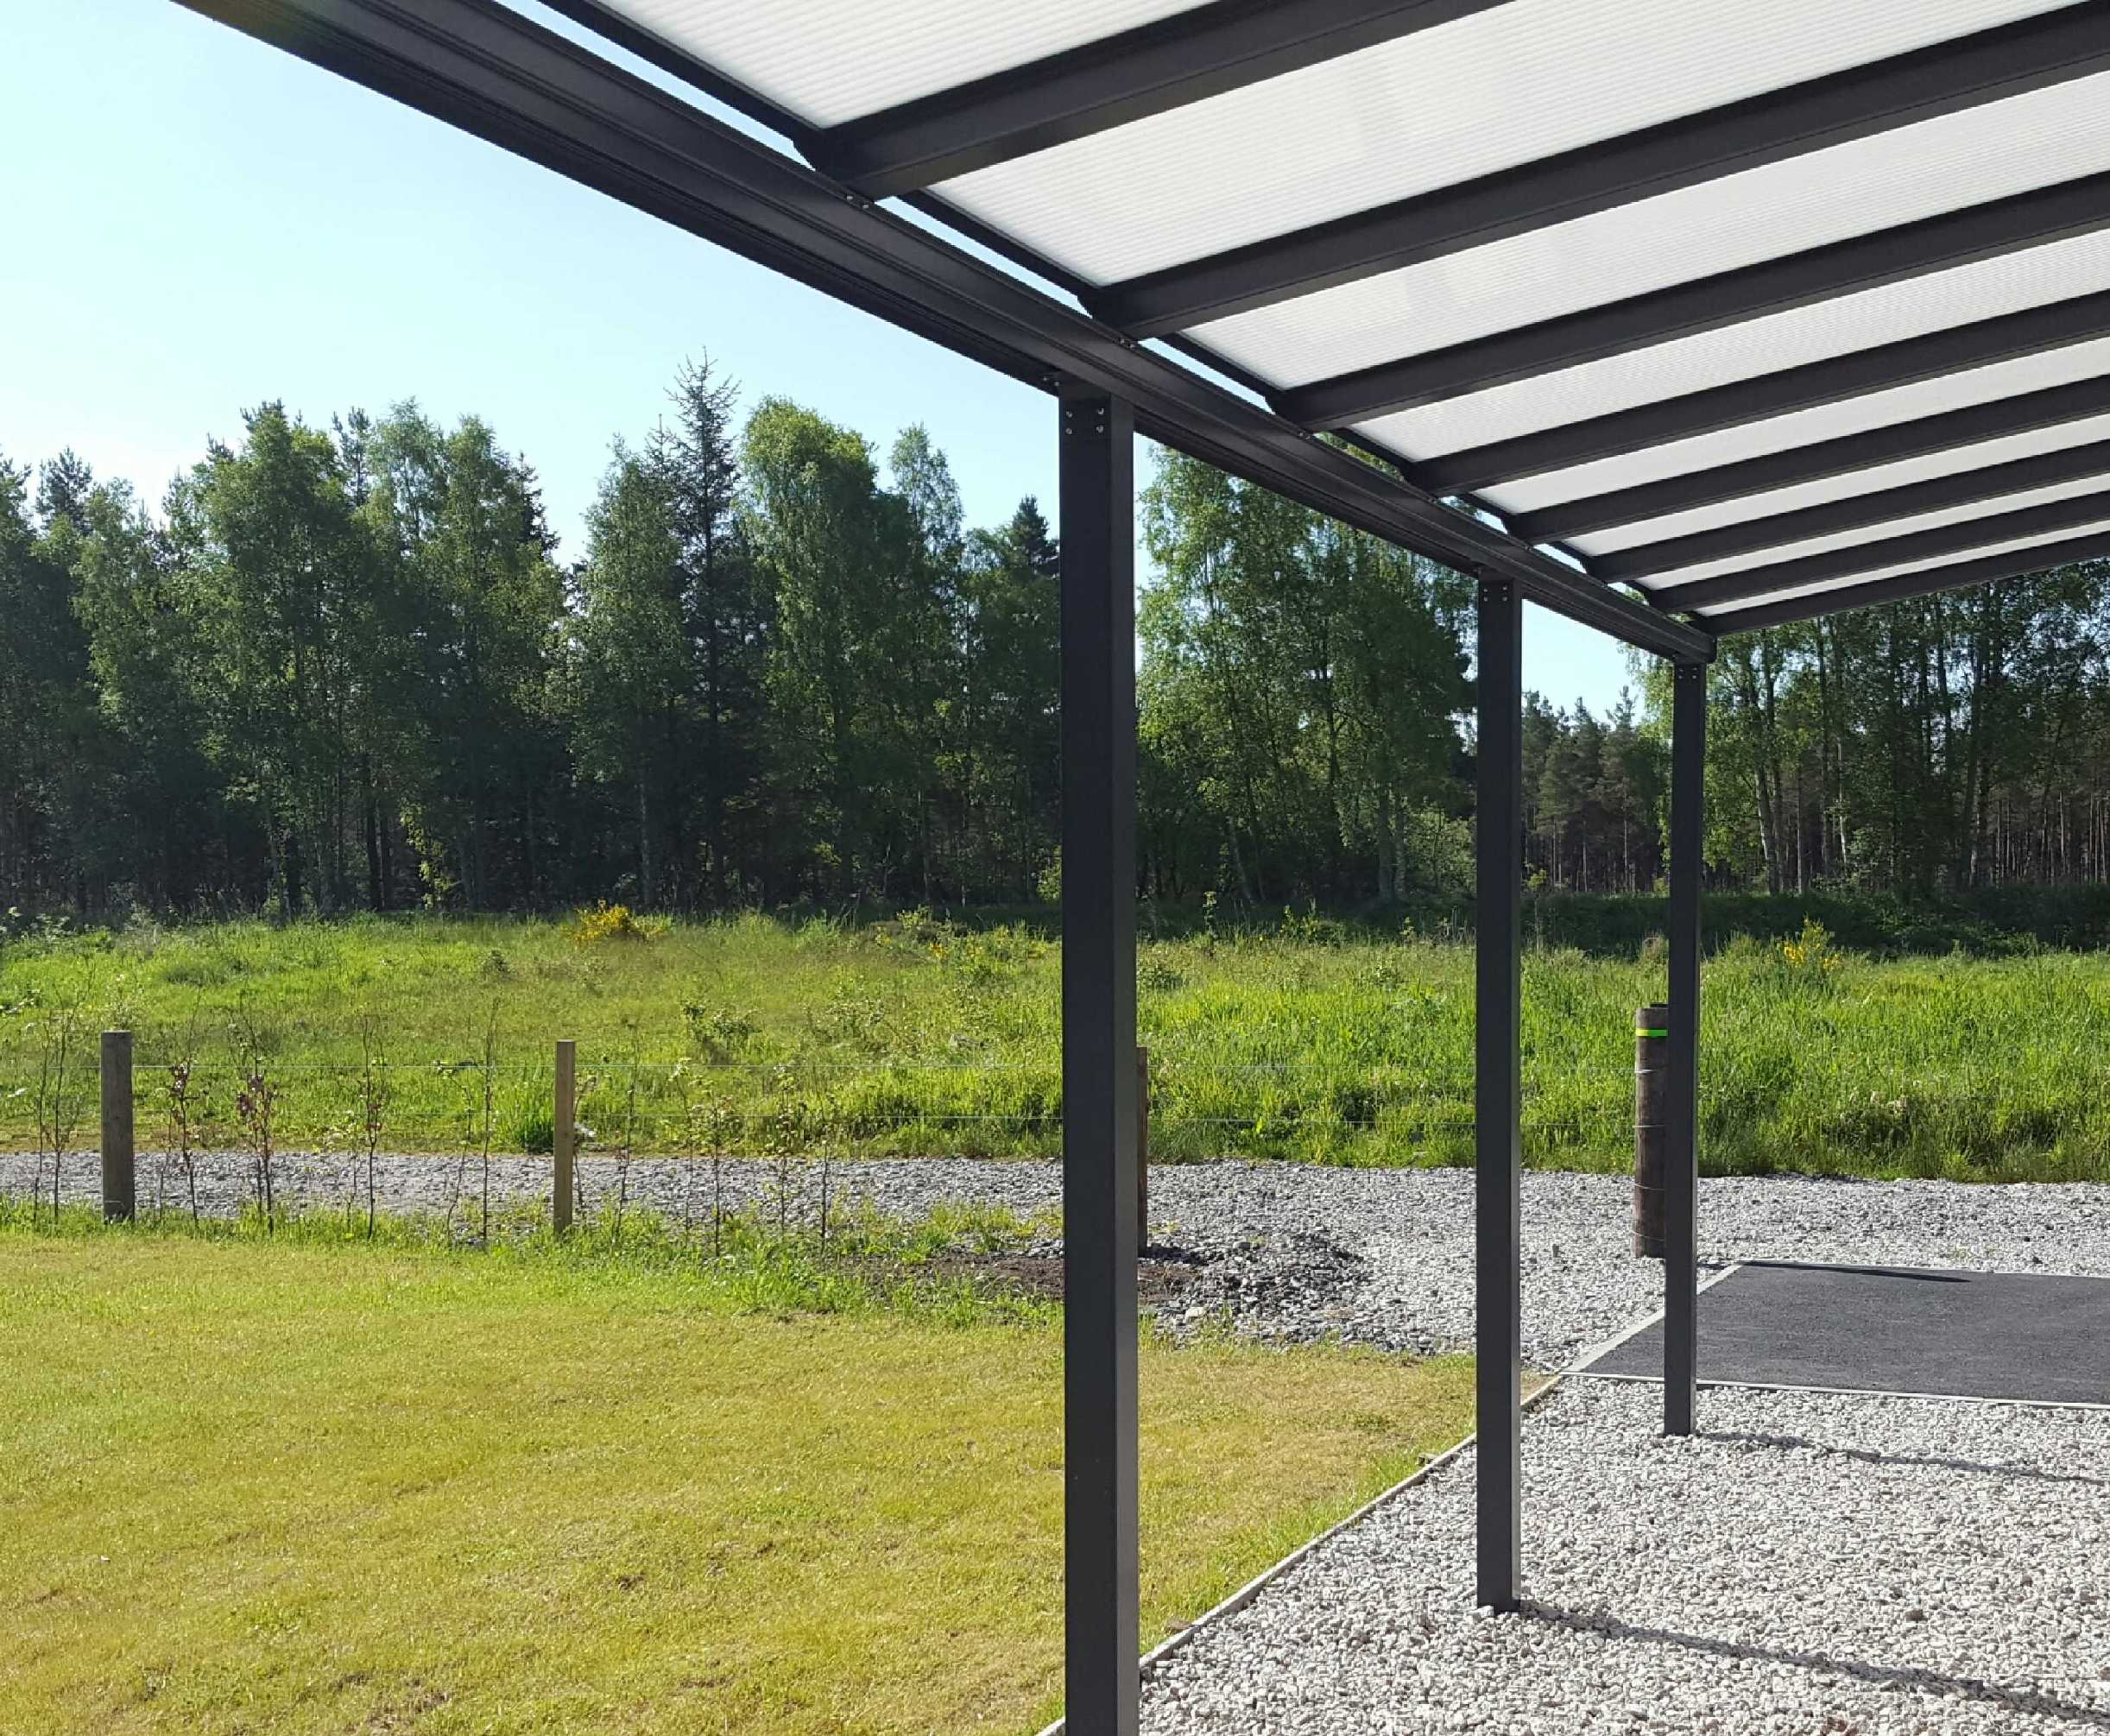 Omega Smart Lean-To Canopy, Anthracite Grey, 6mm Glass Clear Plate Polycarbonate Glazing - 4.2m (W) x 1.5m (P), (3) Supporting Posts